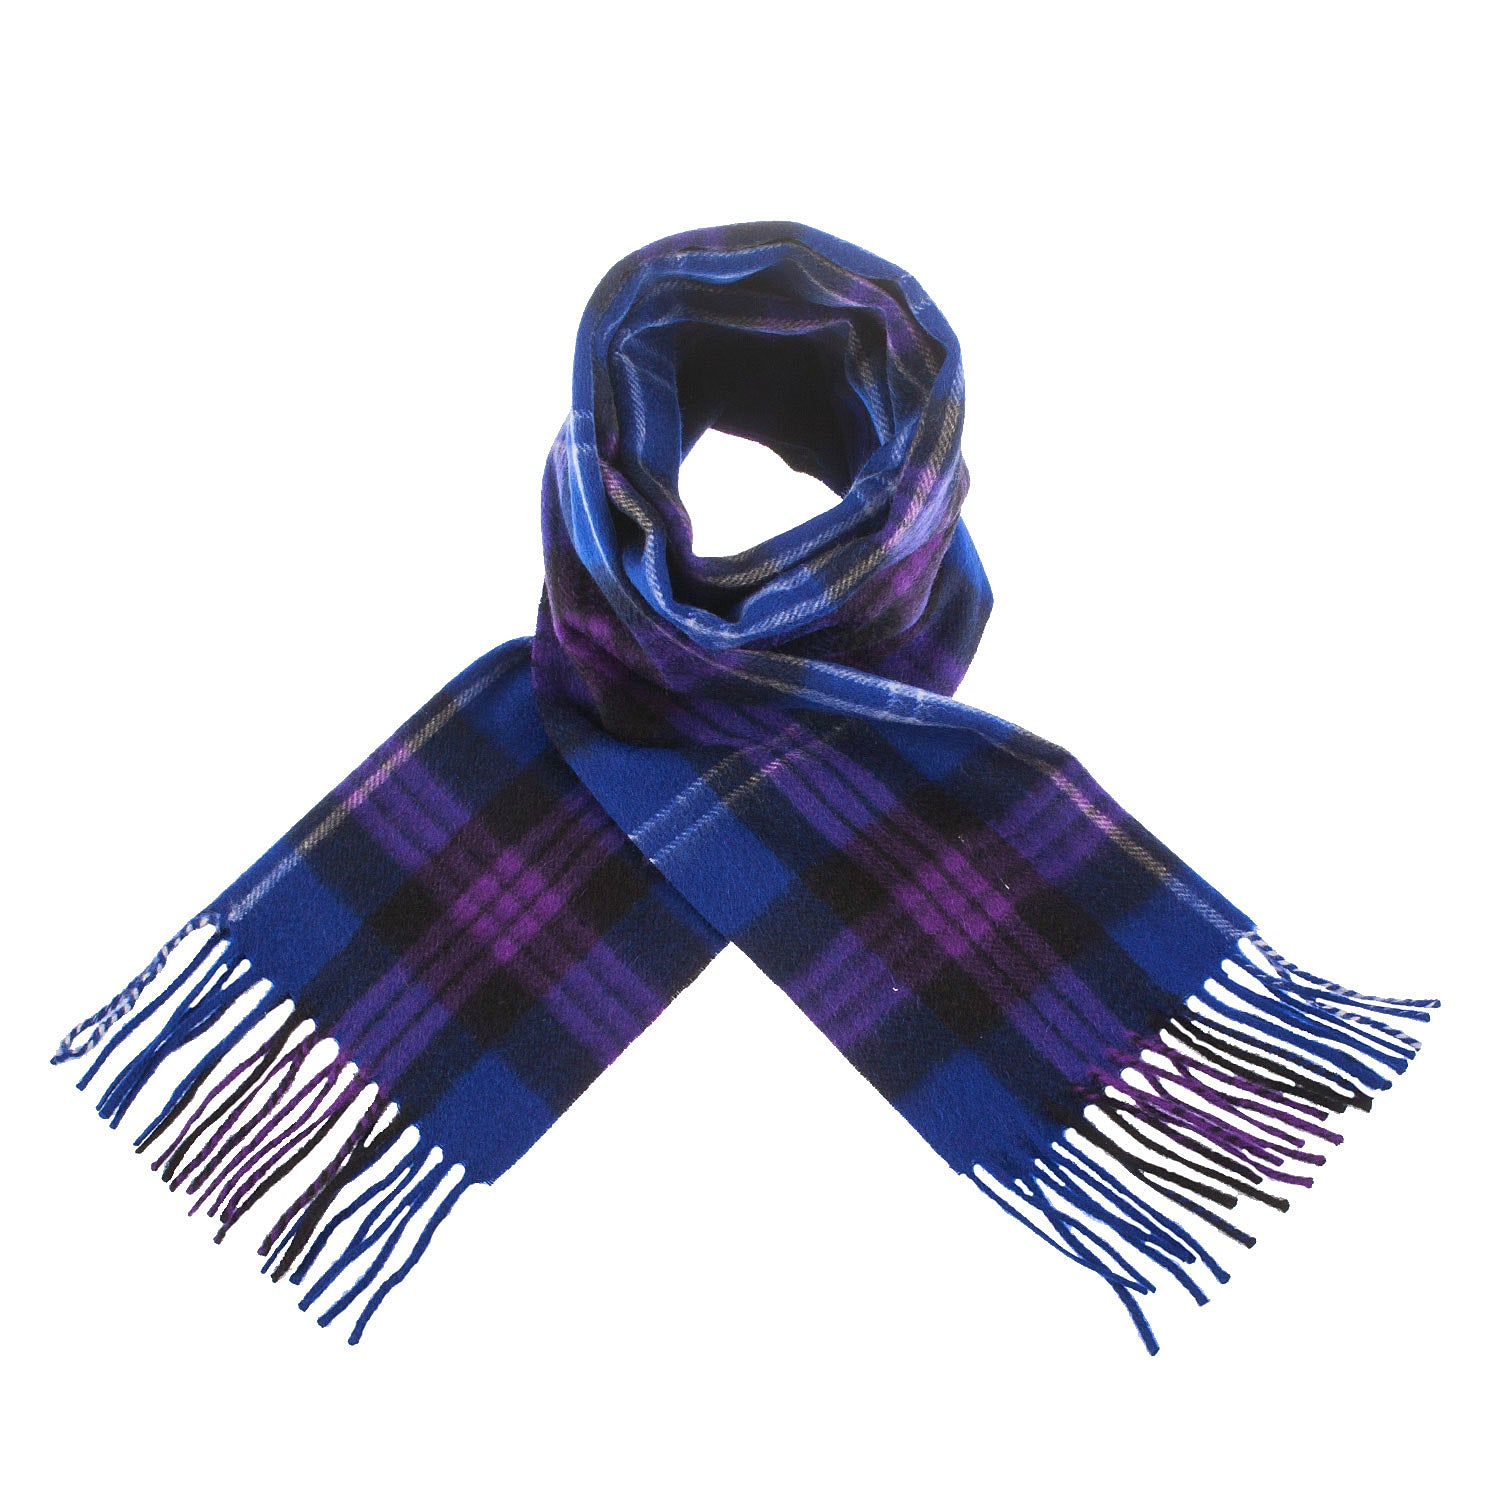 Tartan Lambswool Winter Scarf for Women Heritage of Scotland Blues Purples Buy in Canada at Red Scarf Equestrian